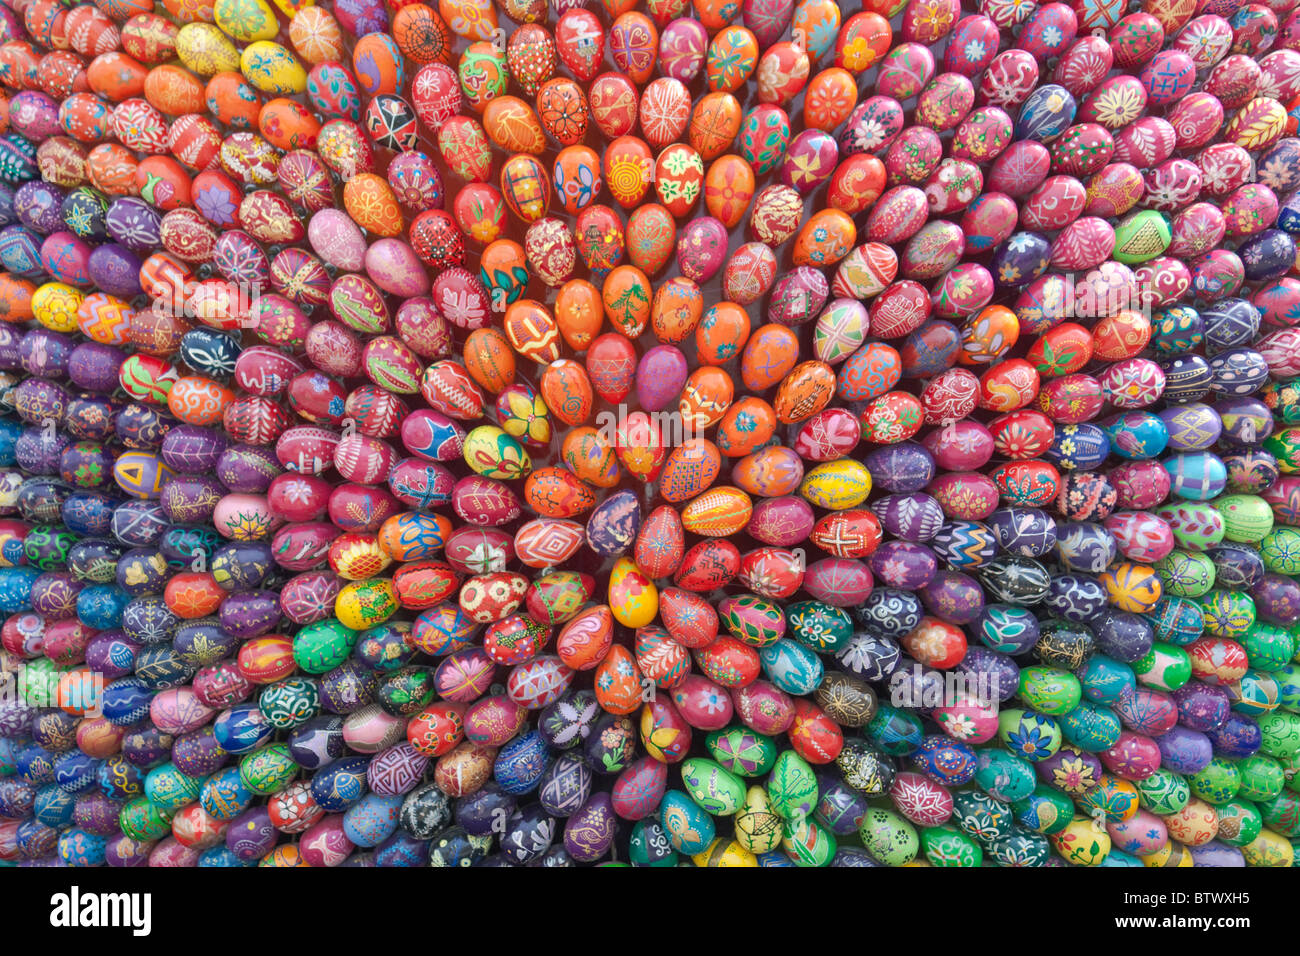 Colorful hand painted easter eggs - Stock Image